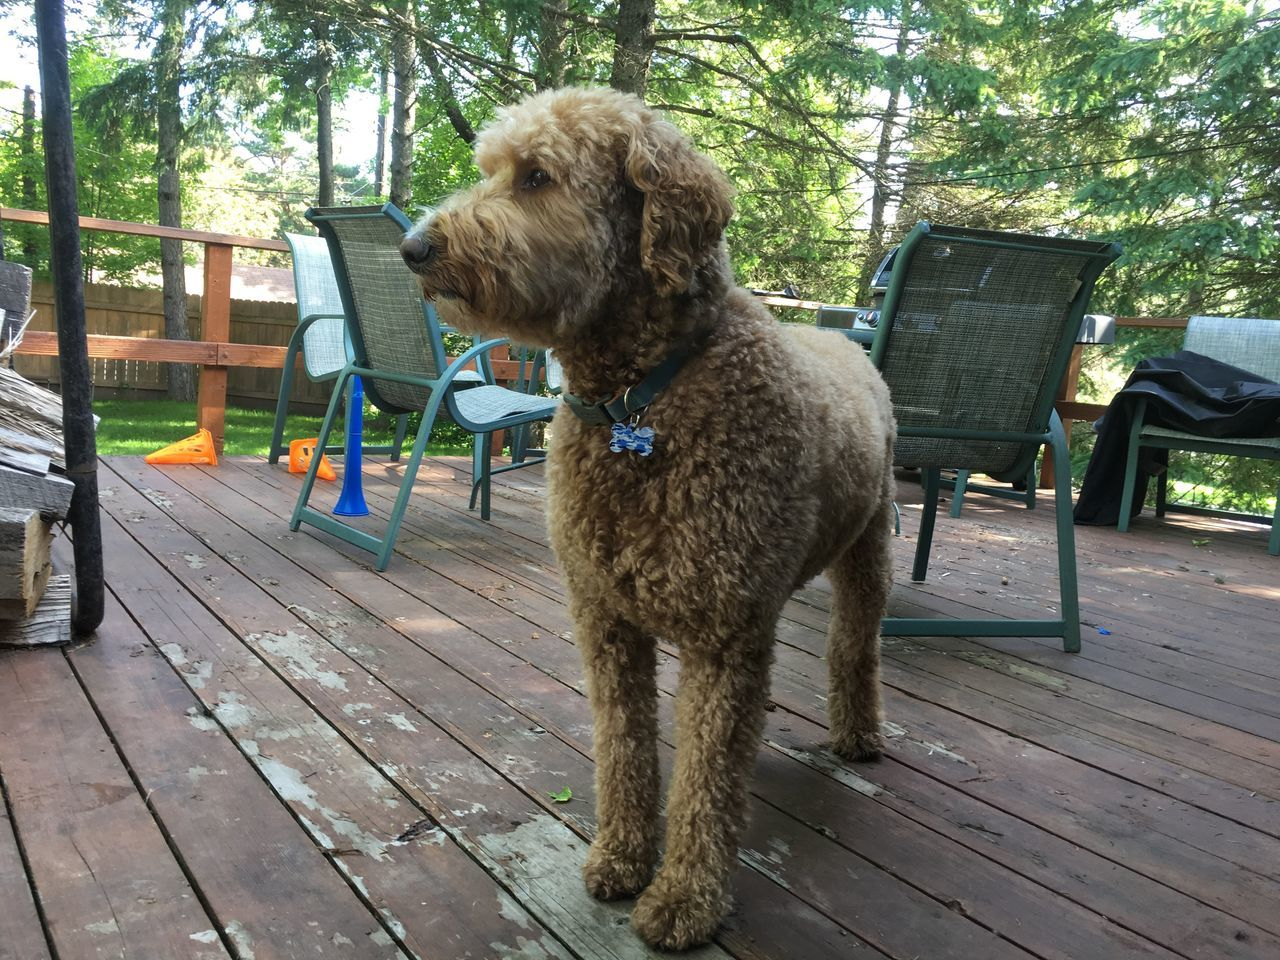 June 18, 2016 / Duluth, Minnesota Animal Brown Day Domestic Animals Duluth Goldendoodle Mammal Minnesota Nature No People Outdoors Pets Relaxation Resting Tree Wood - Material